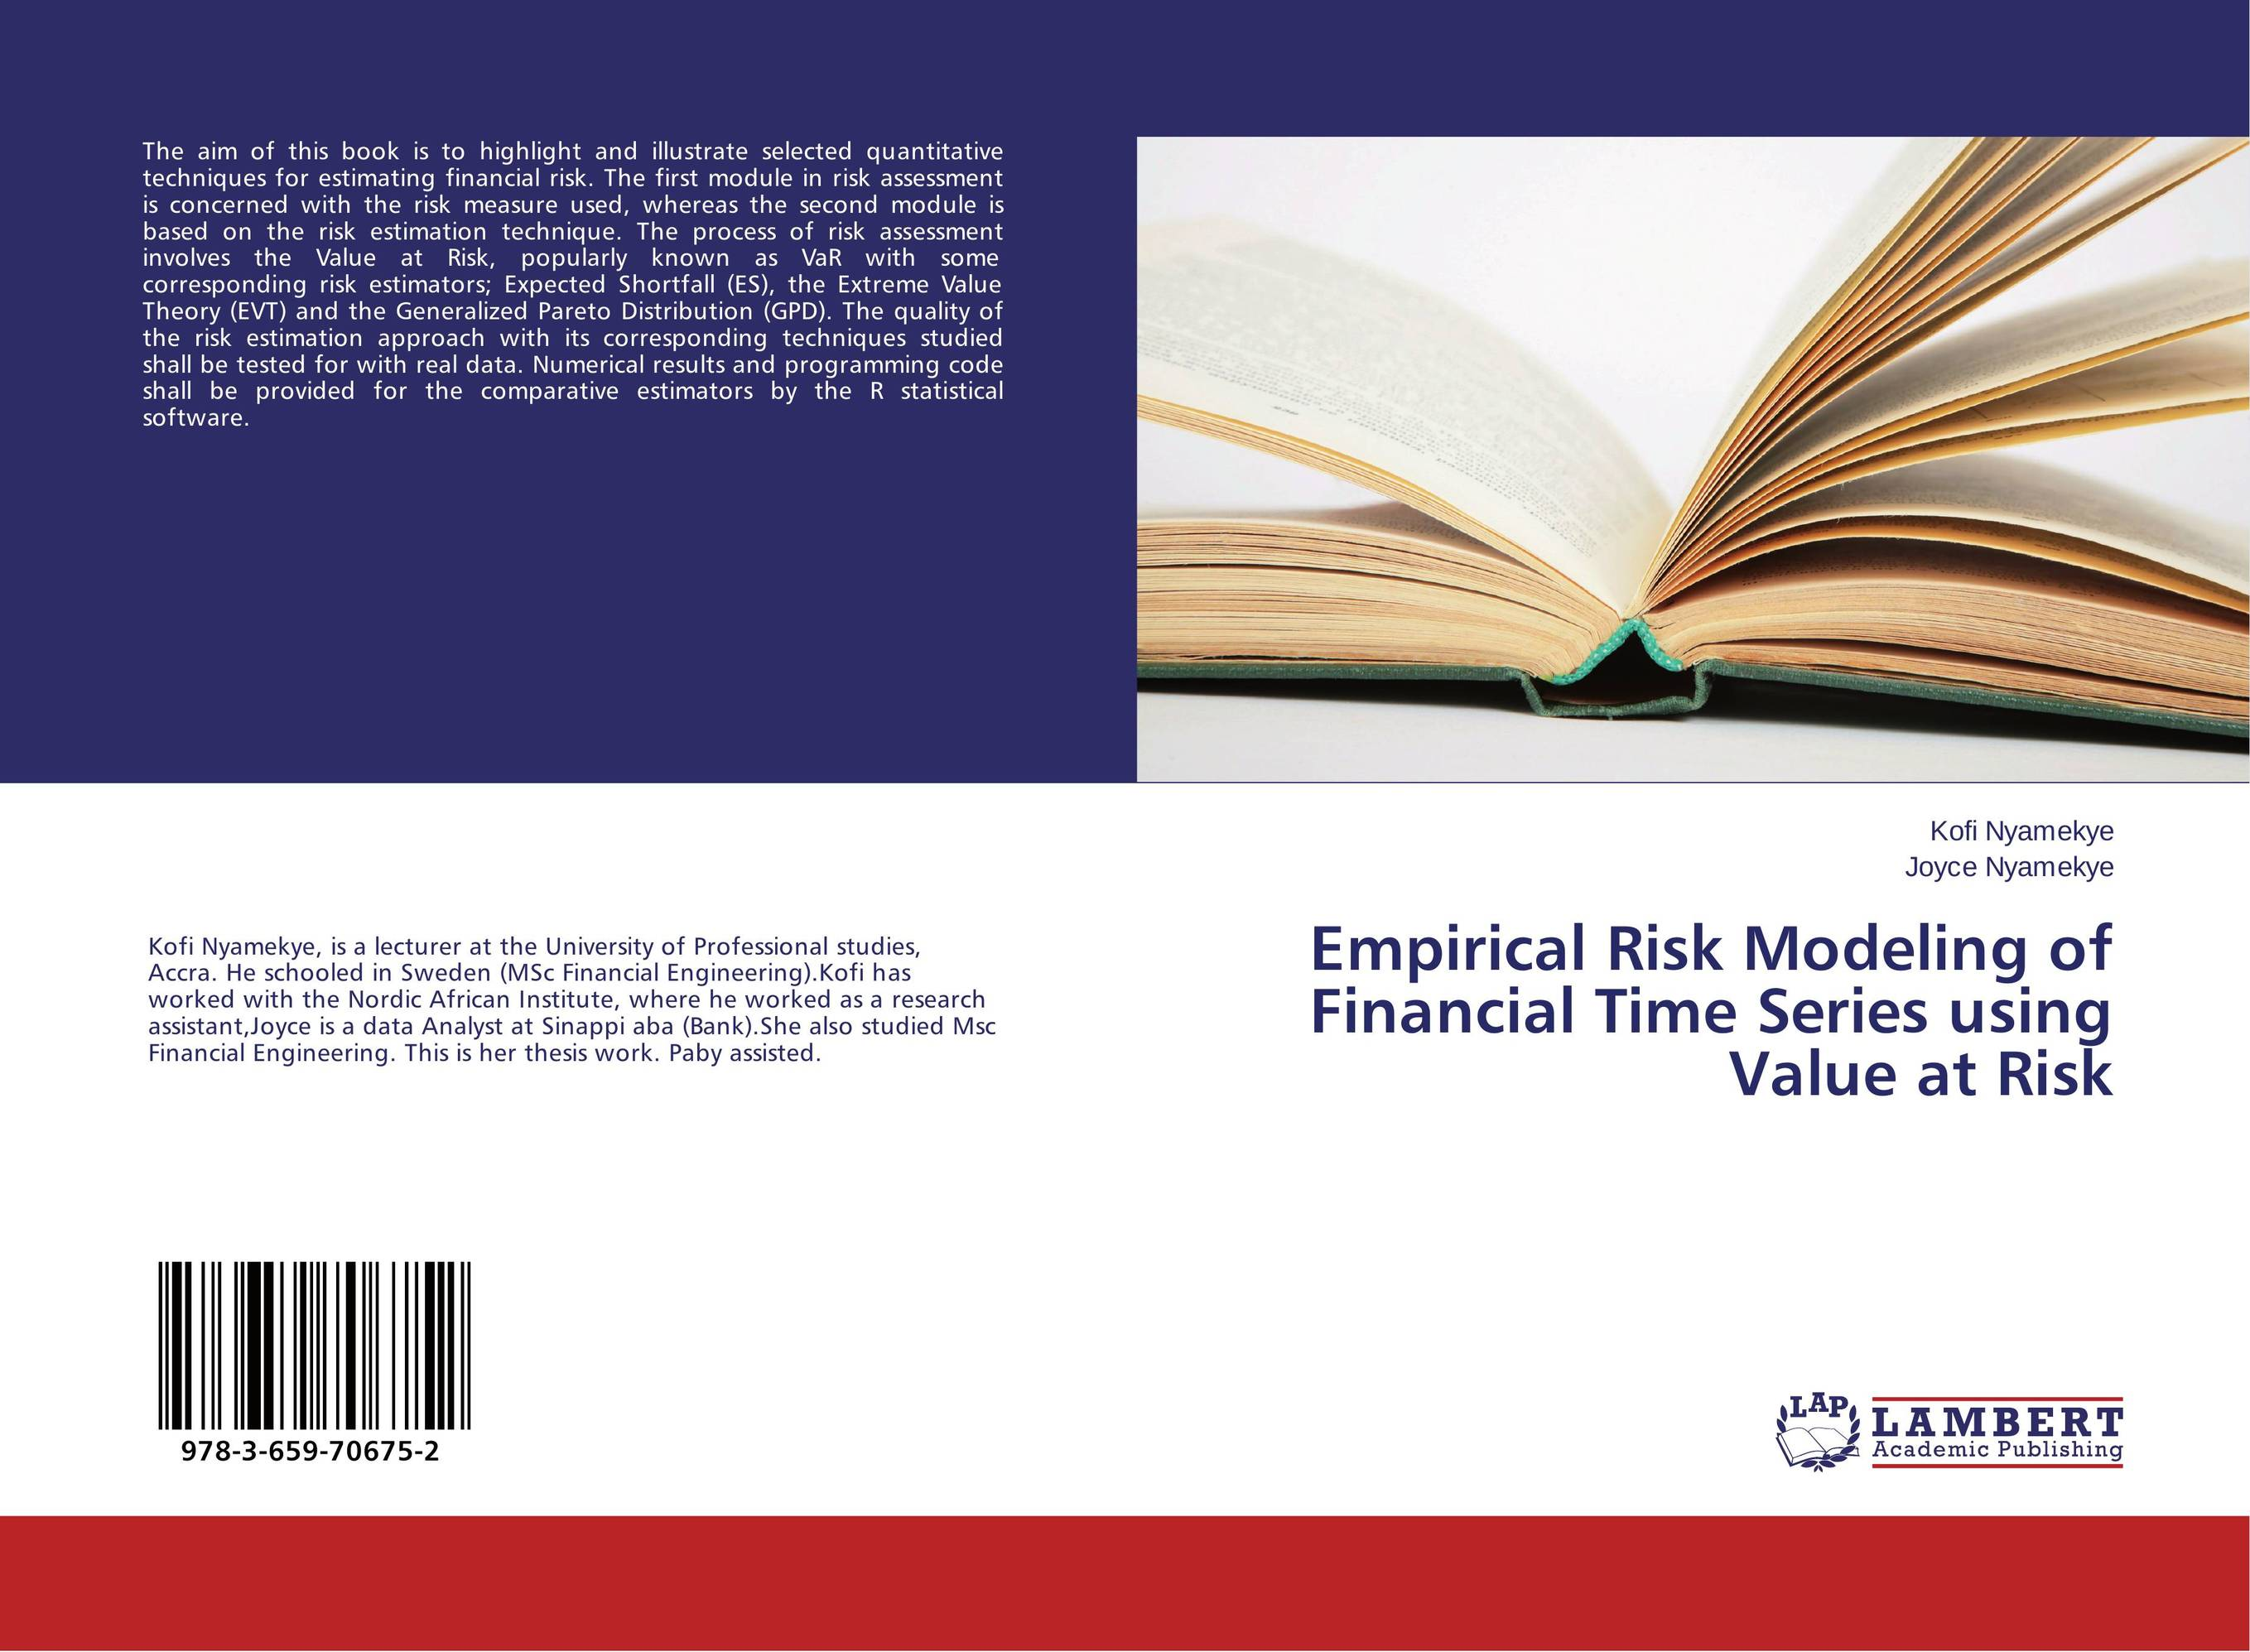 Empirical Risk Modeling of Financial Time Series using Value at Risk aygun nusrat alasgarova financial risk forecasting using neuro fuzzy approach